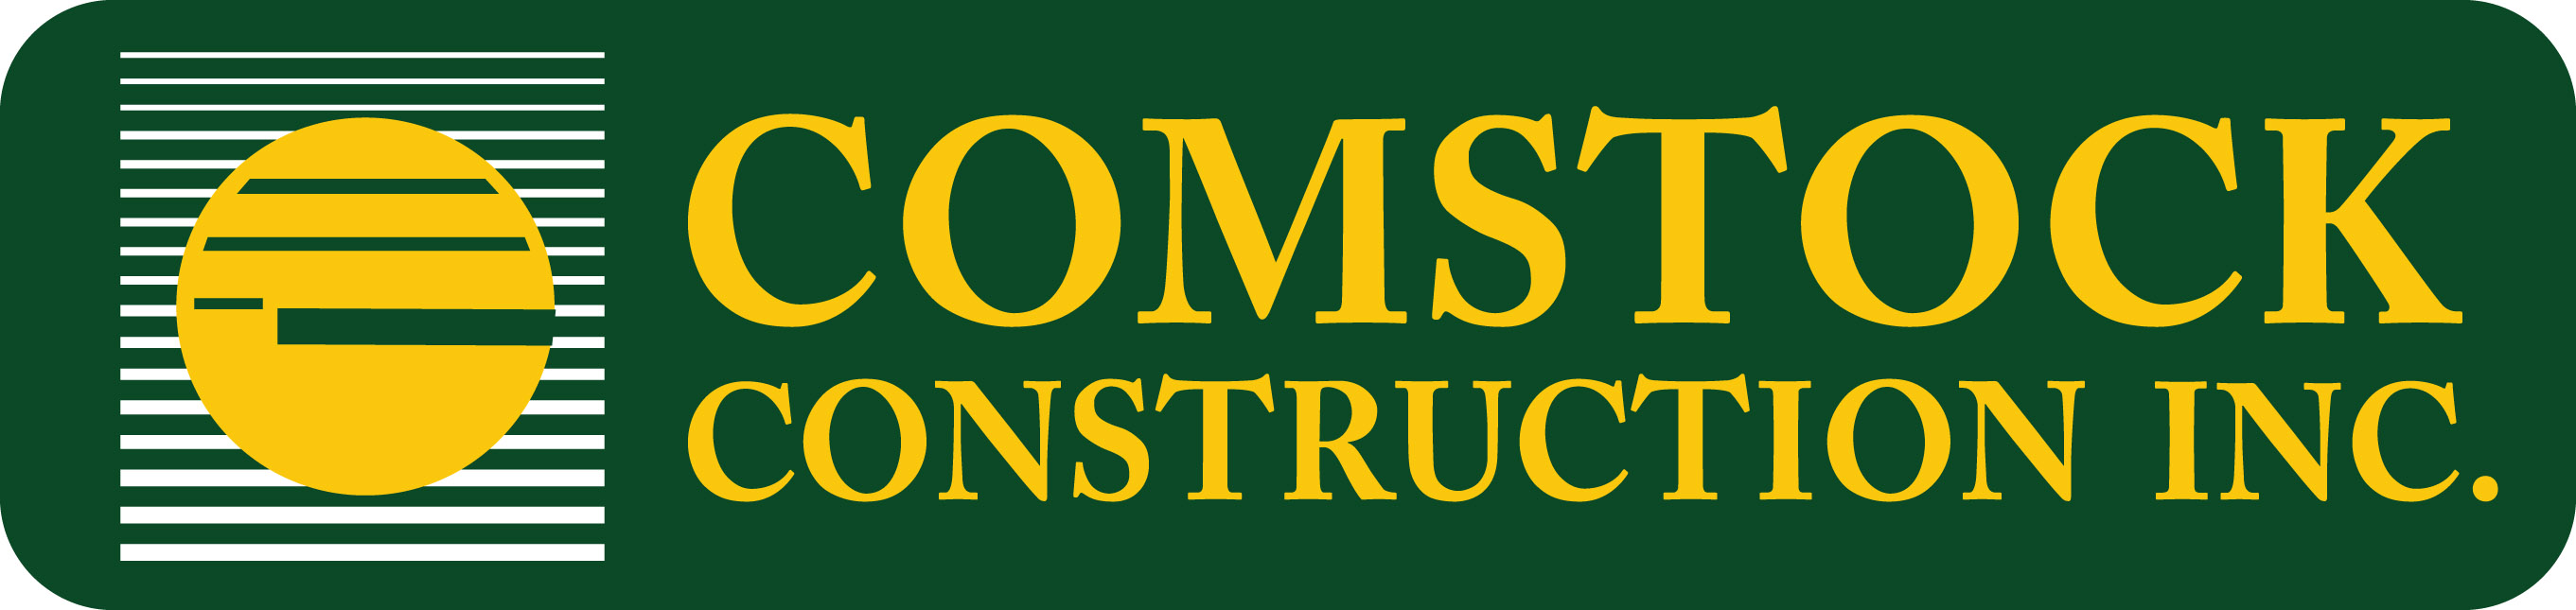 Comstock Construction logo